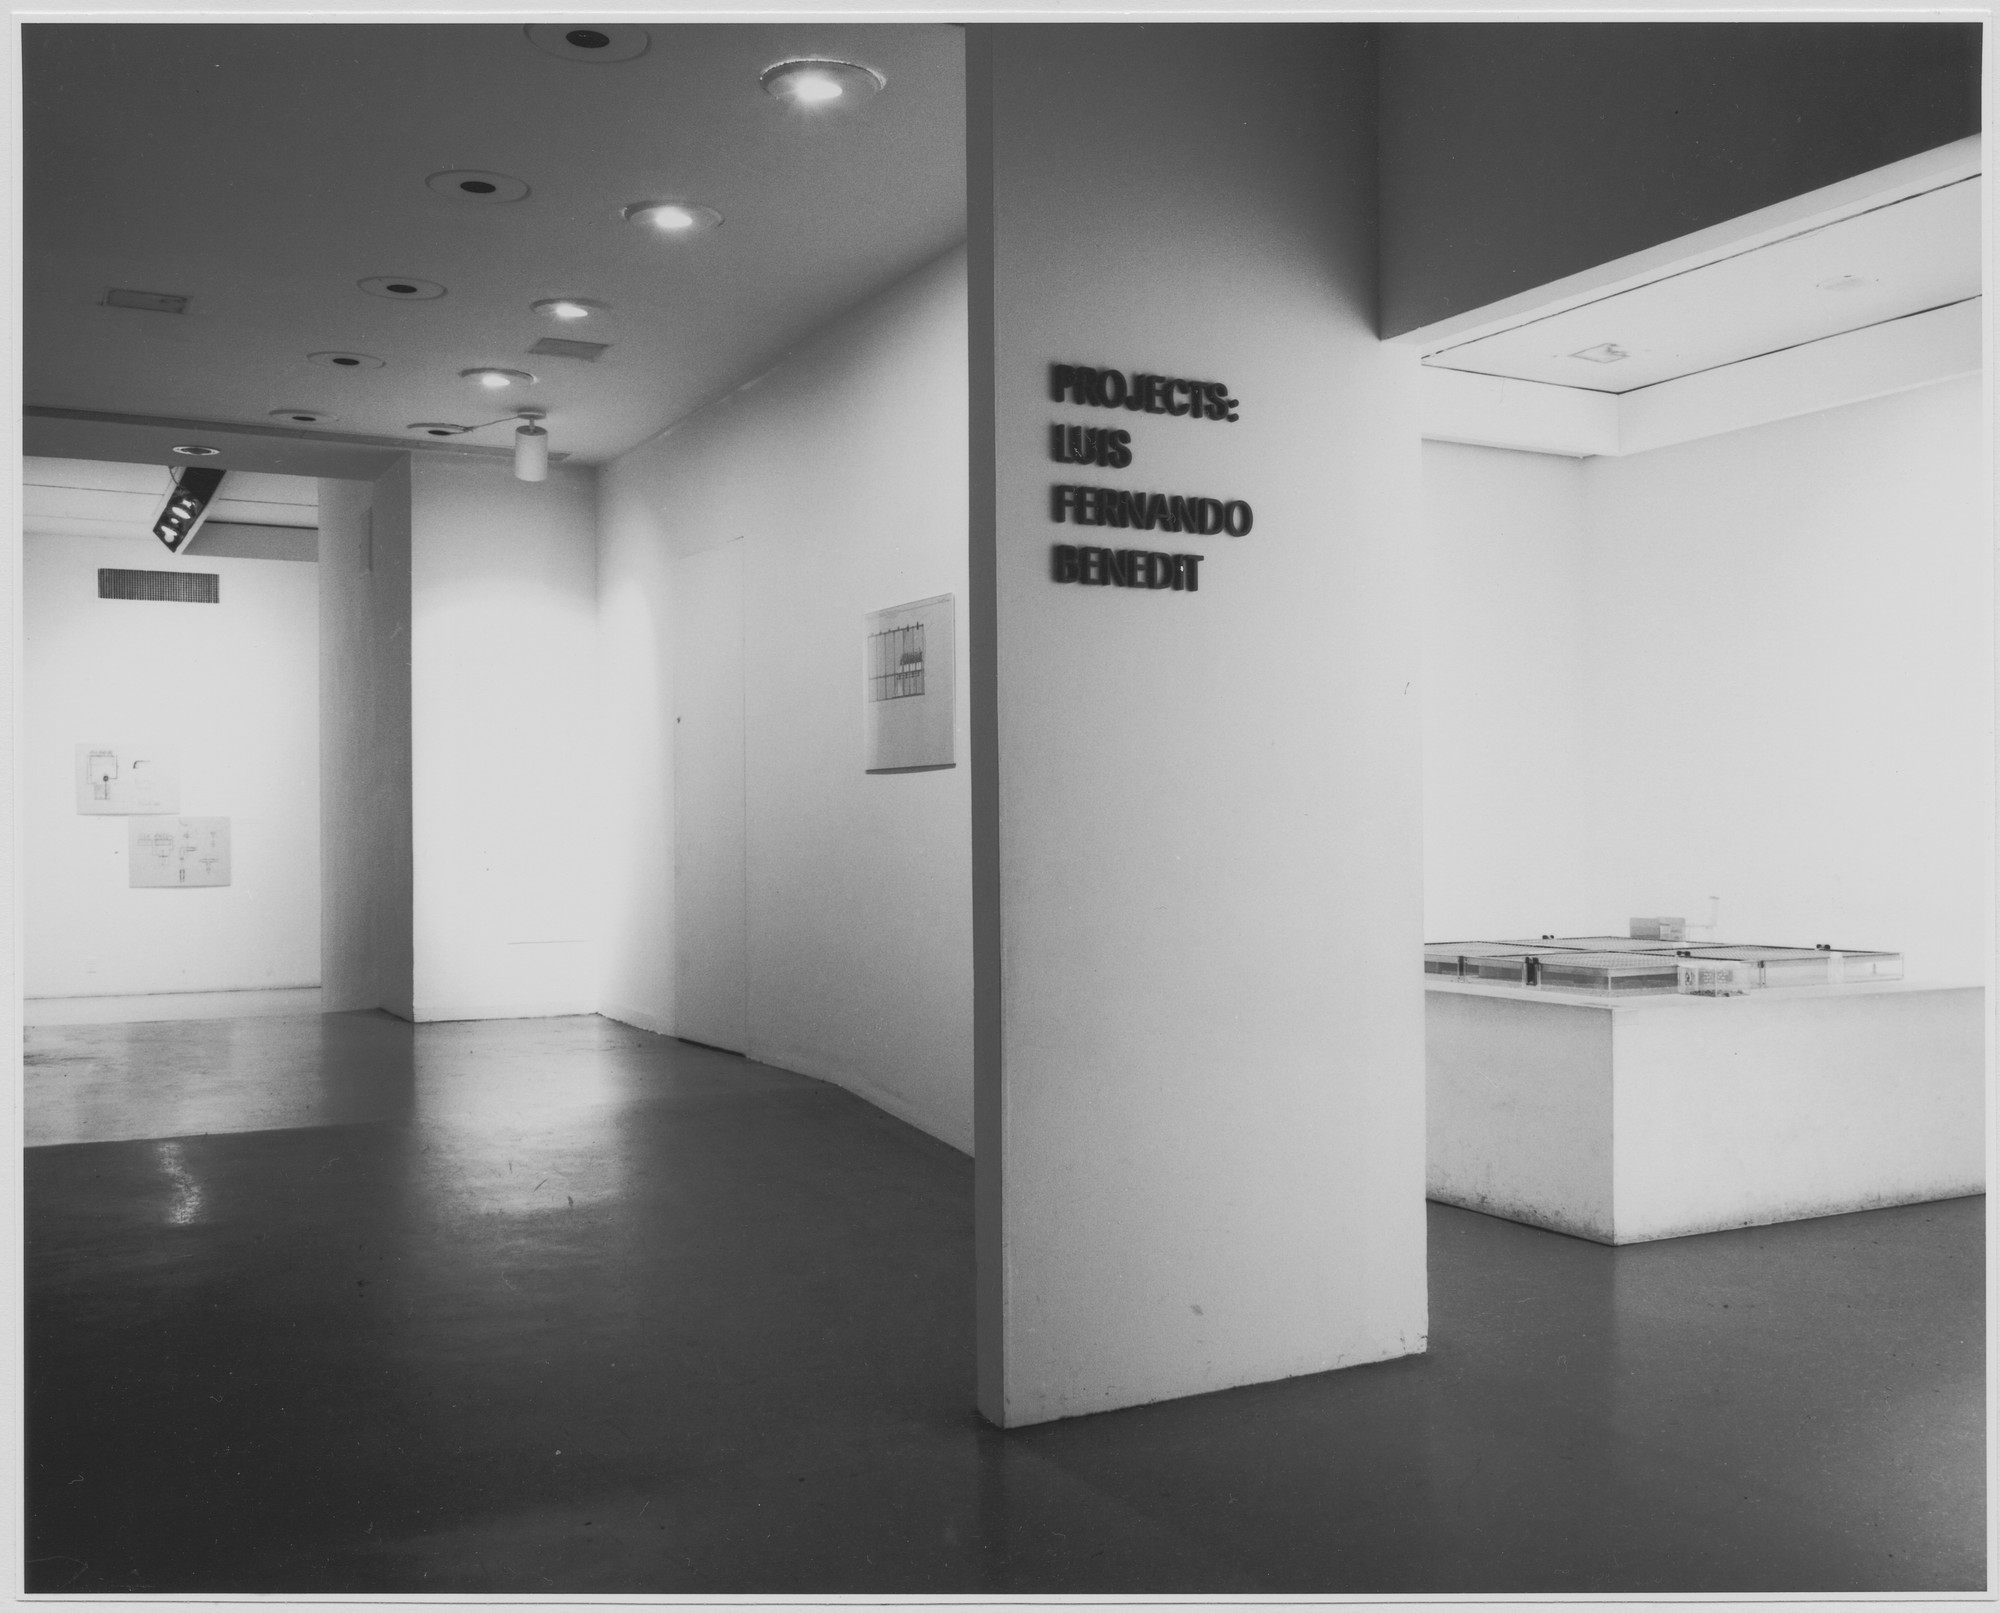 "Installation view of the exhibition, ""Projects: Luis Fernando Benedit November 14, 1972–January 2, 1973. Photographic Archive. The Museum of Modern Art Archives, New York. IN1018a.1. Photograph by Katherine Keller."